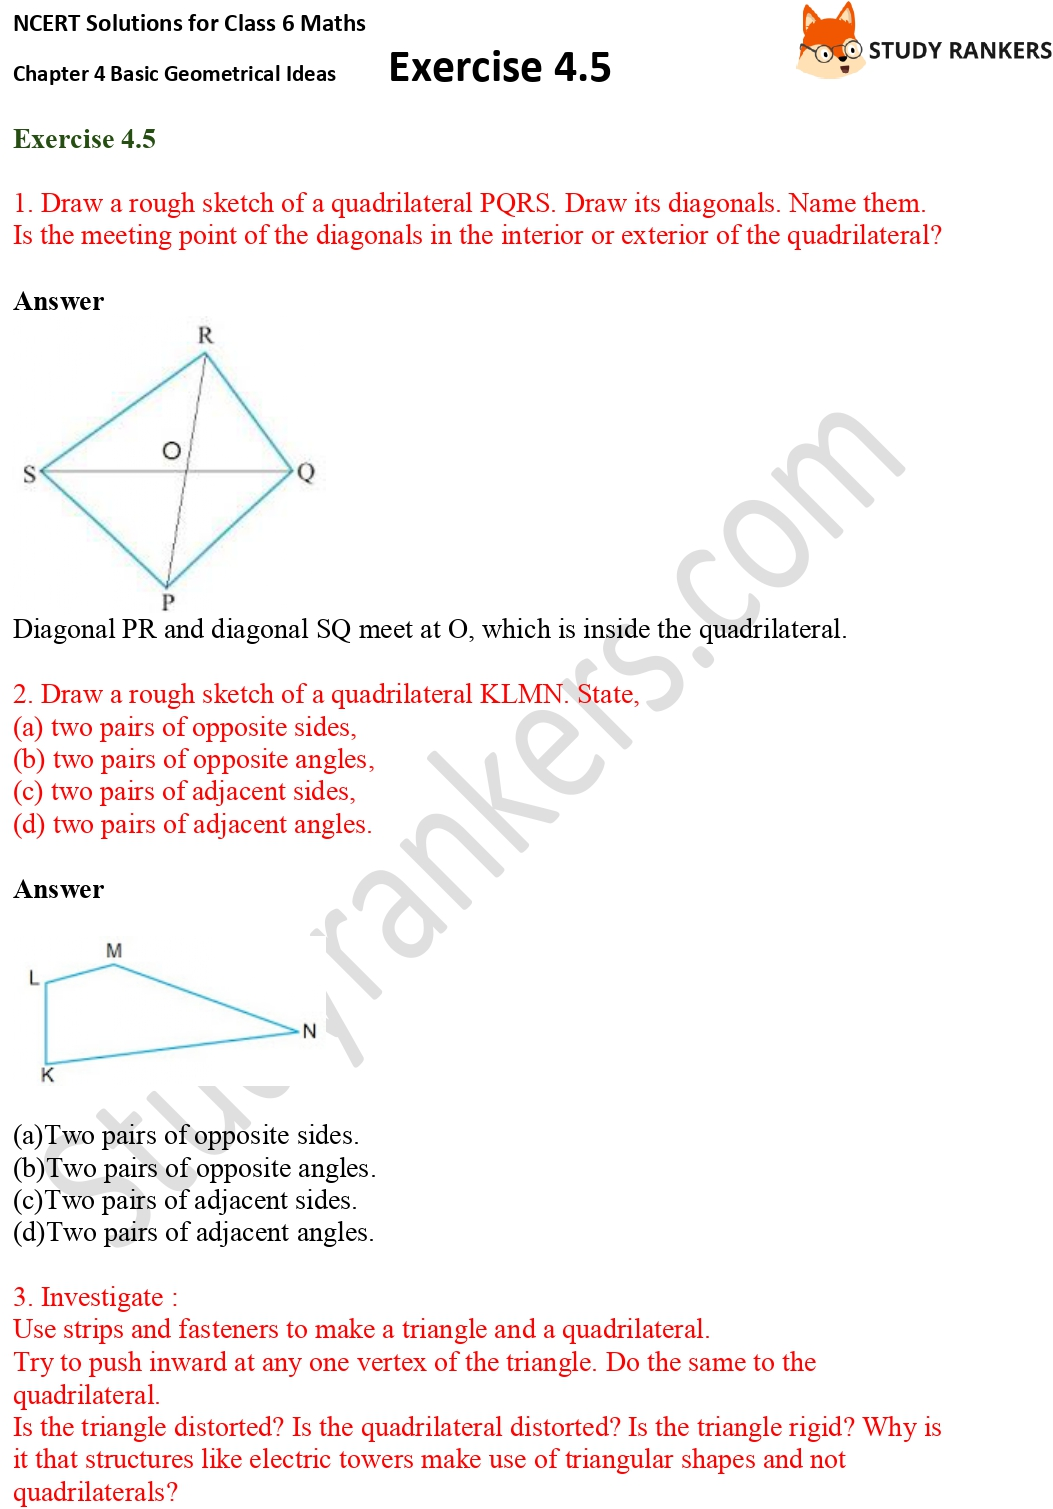 NCERT Solutions for Class 6 Maths Chapter 4 Basic Geometrical Ideas Exercise 4.5 Part 1